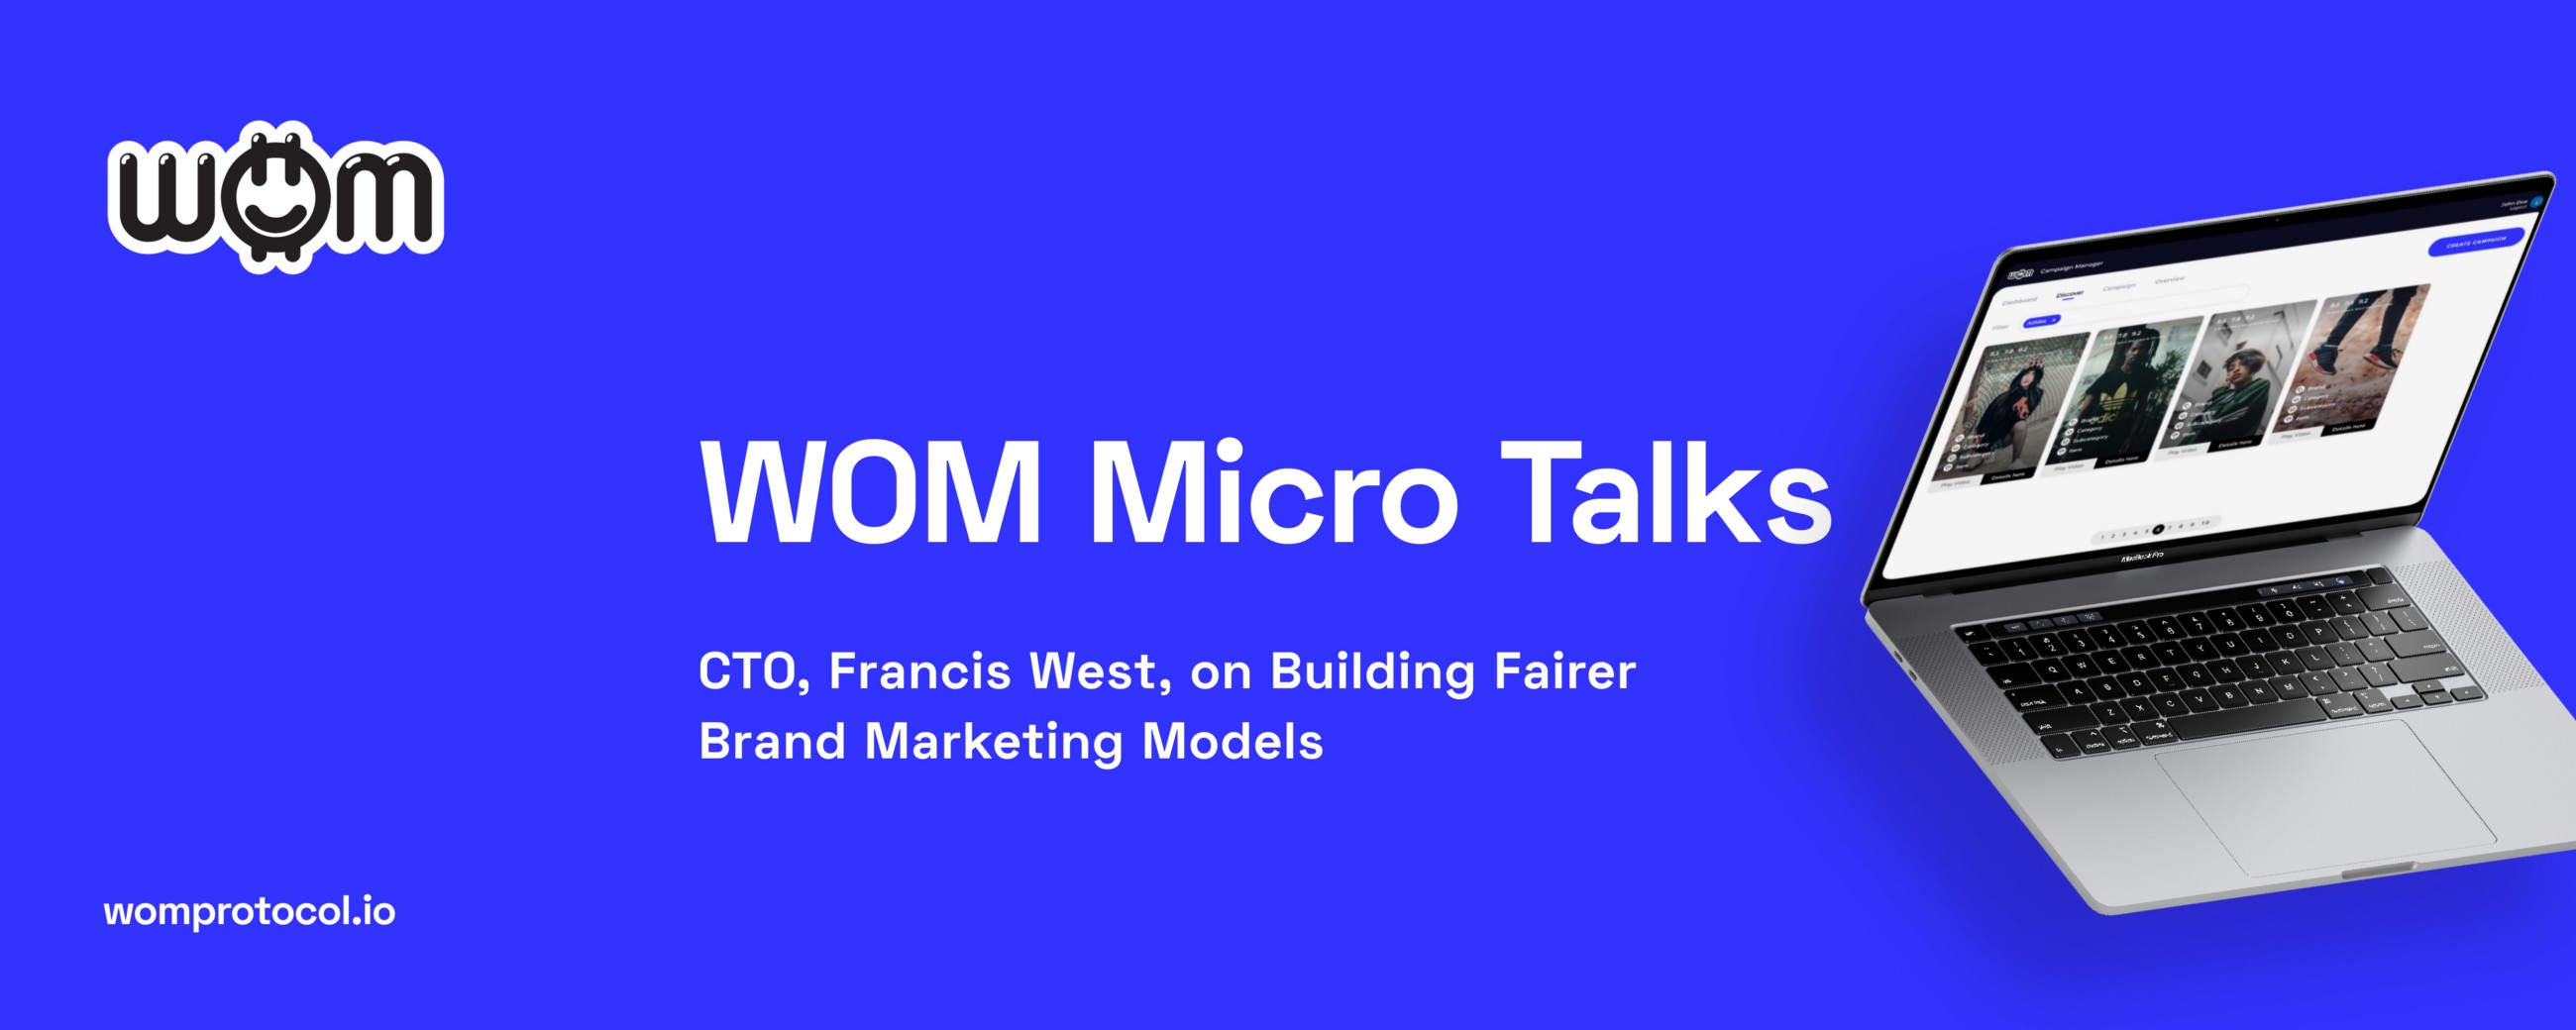 WOM Micro Talks: CTO, Francis West, on Building Fairer Brand Marketing Models